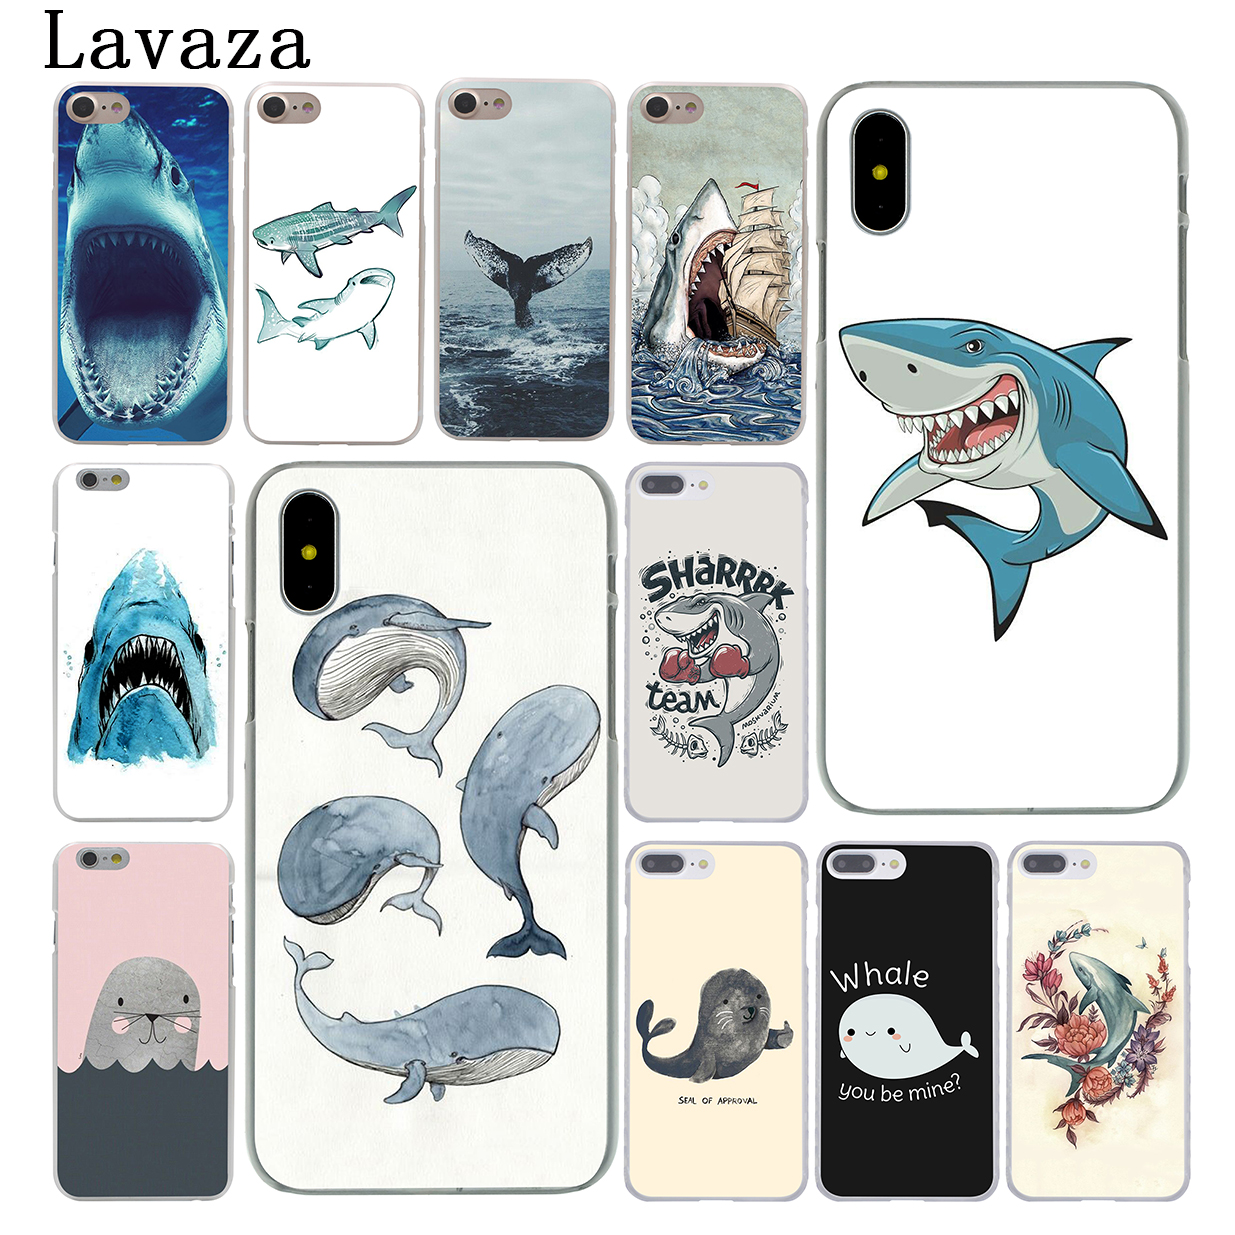 Maiyaca Animal Seal Novelty Fundas Phone Case Cover For Apple Iphone 8 7 6 6s Plus X Xs Max 5 5s Se Xr Cellphones Half-wrapped Case Cellphones & Telecommunications